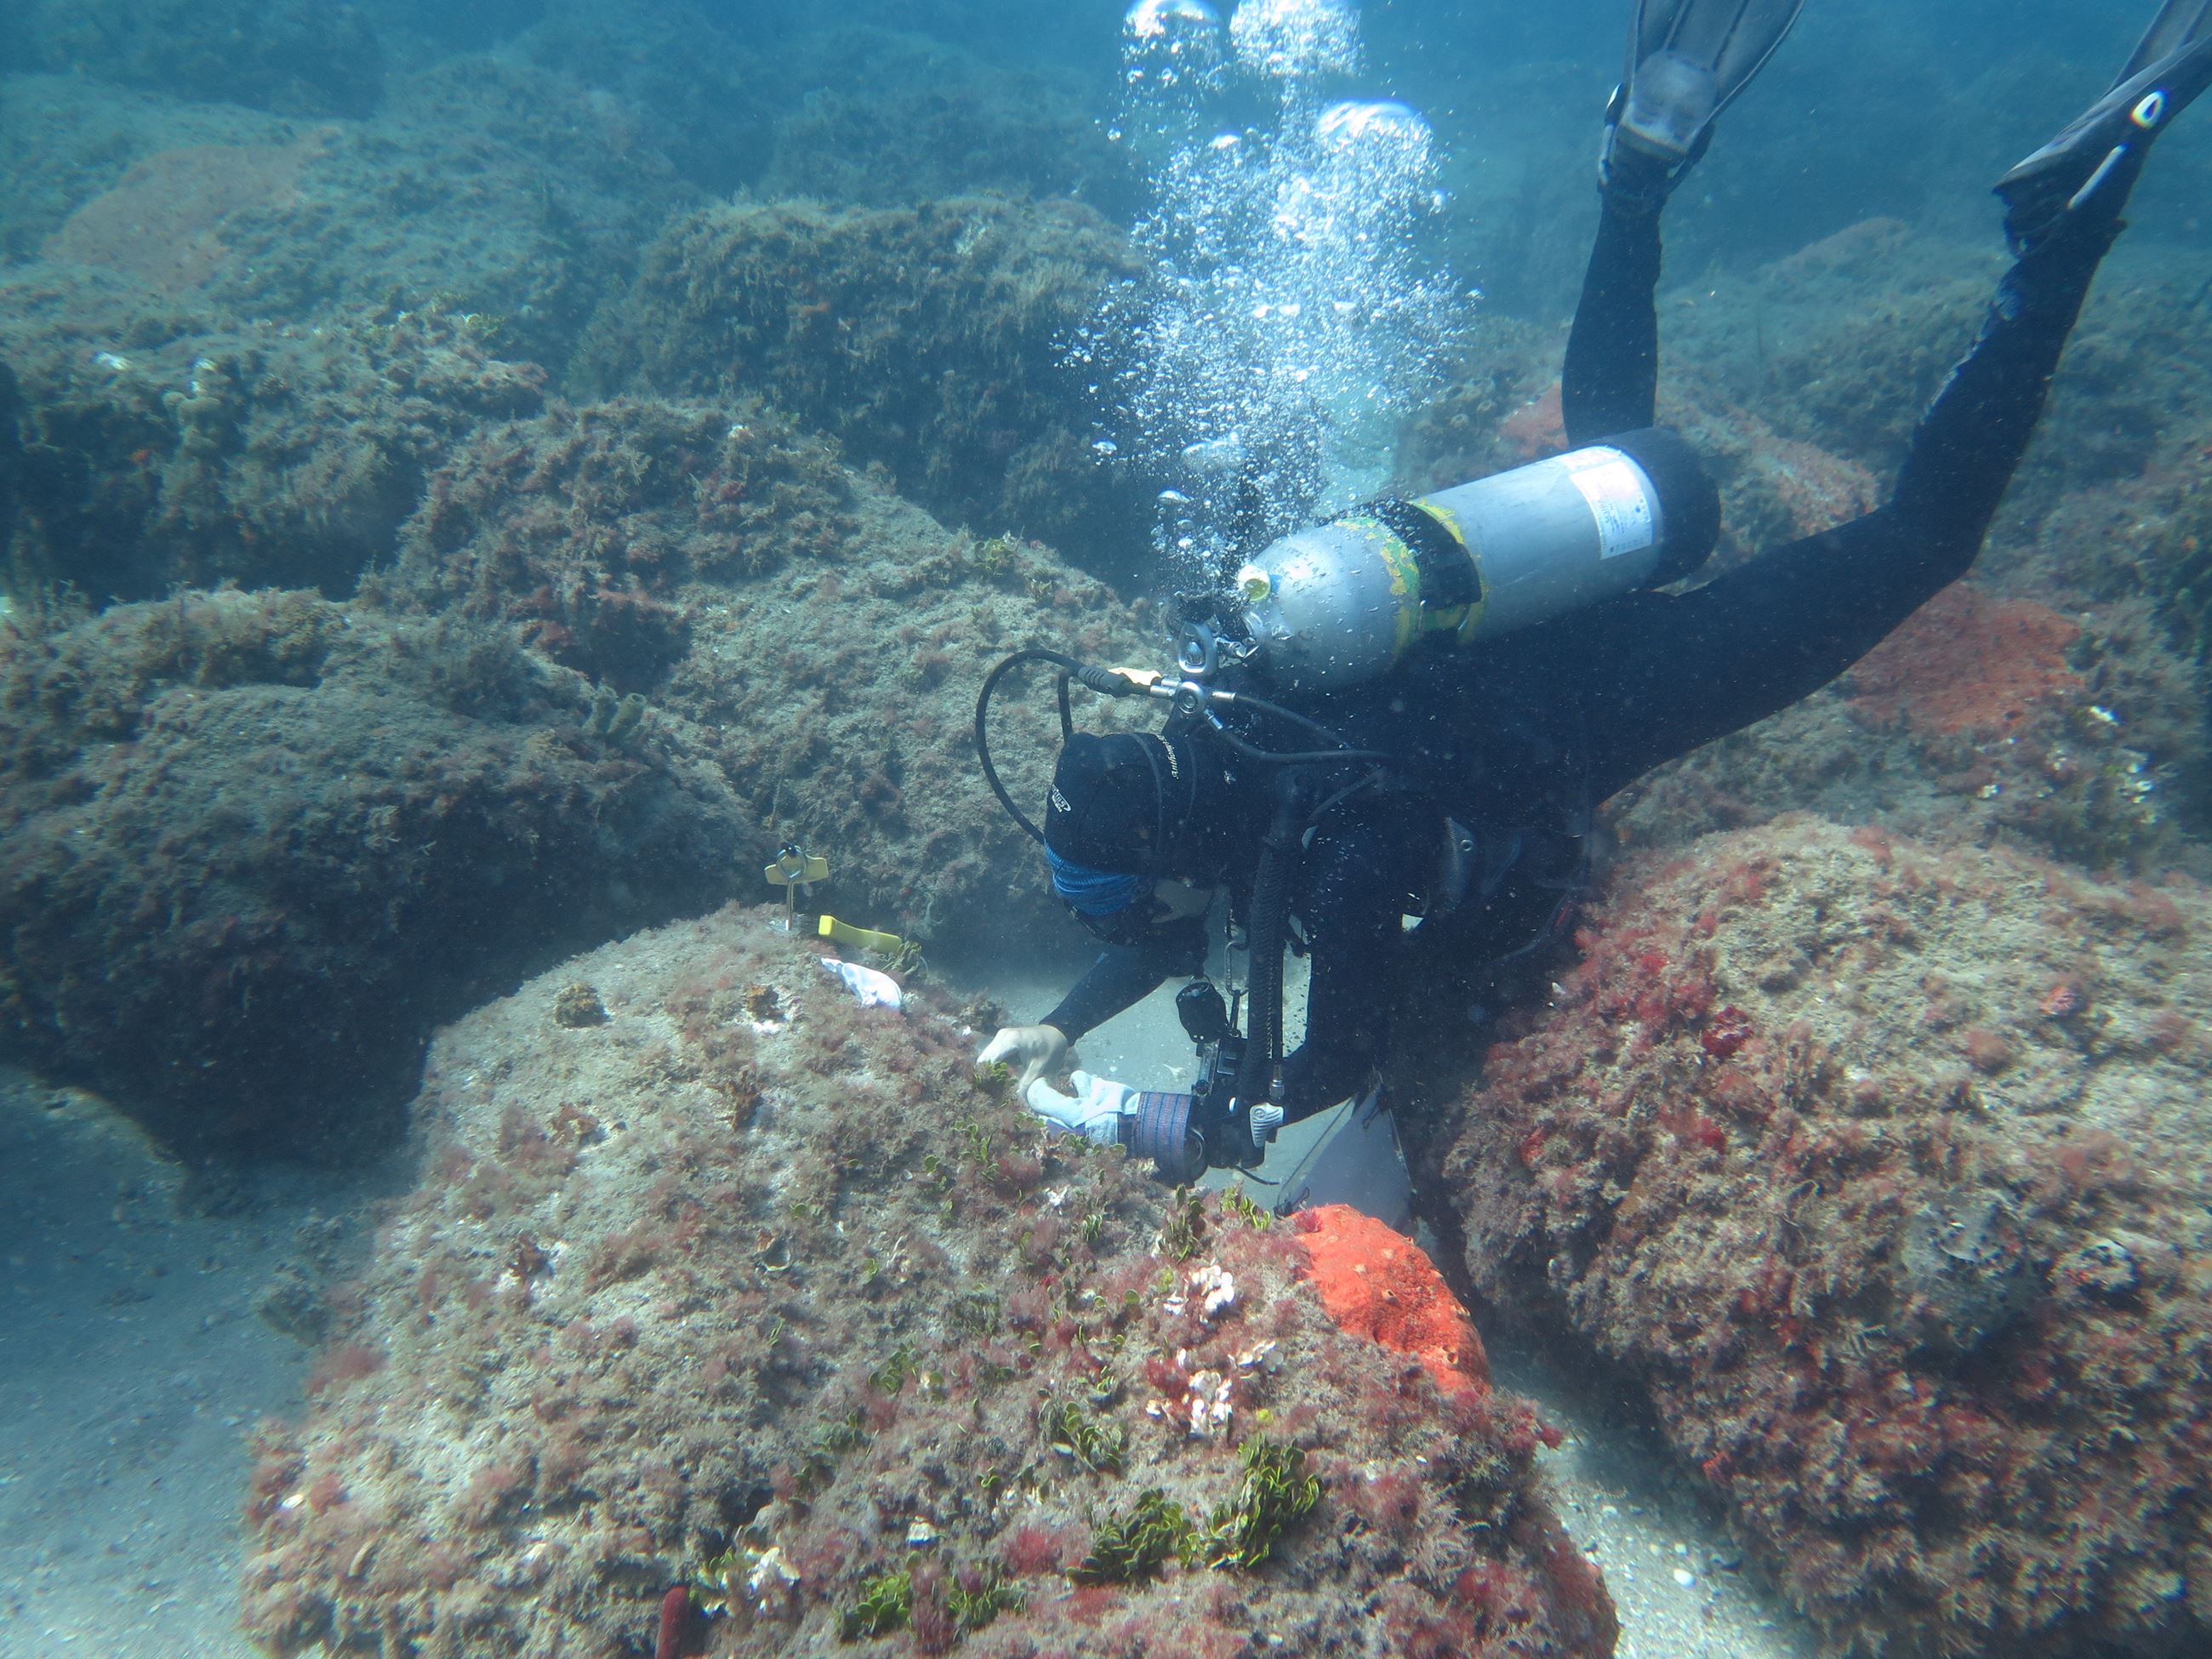 Coastal Eco-Group diver removing stony corals